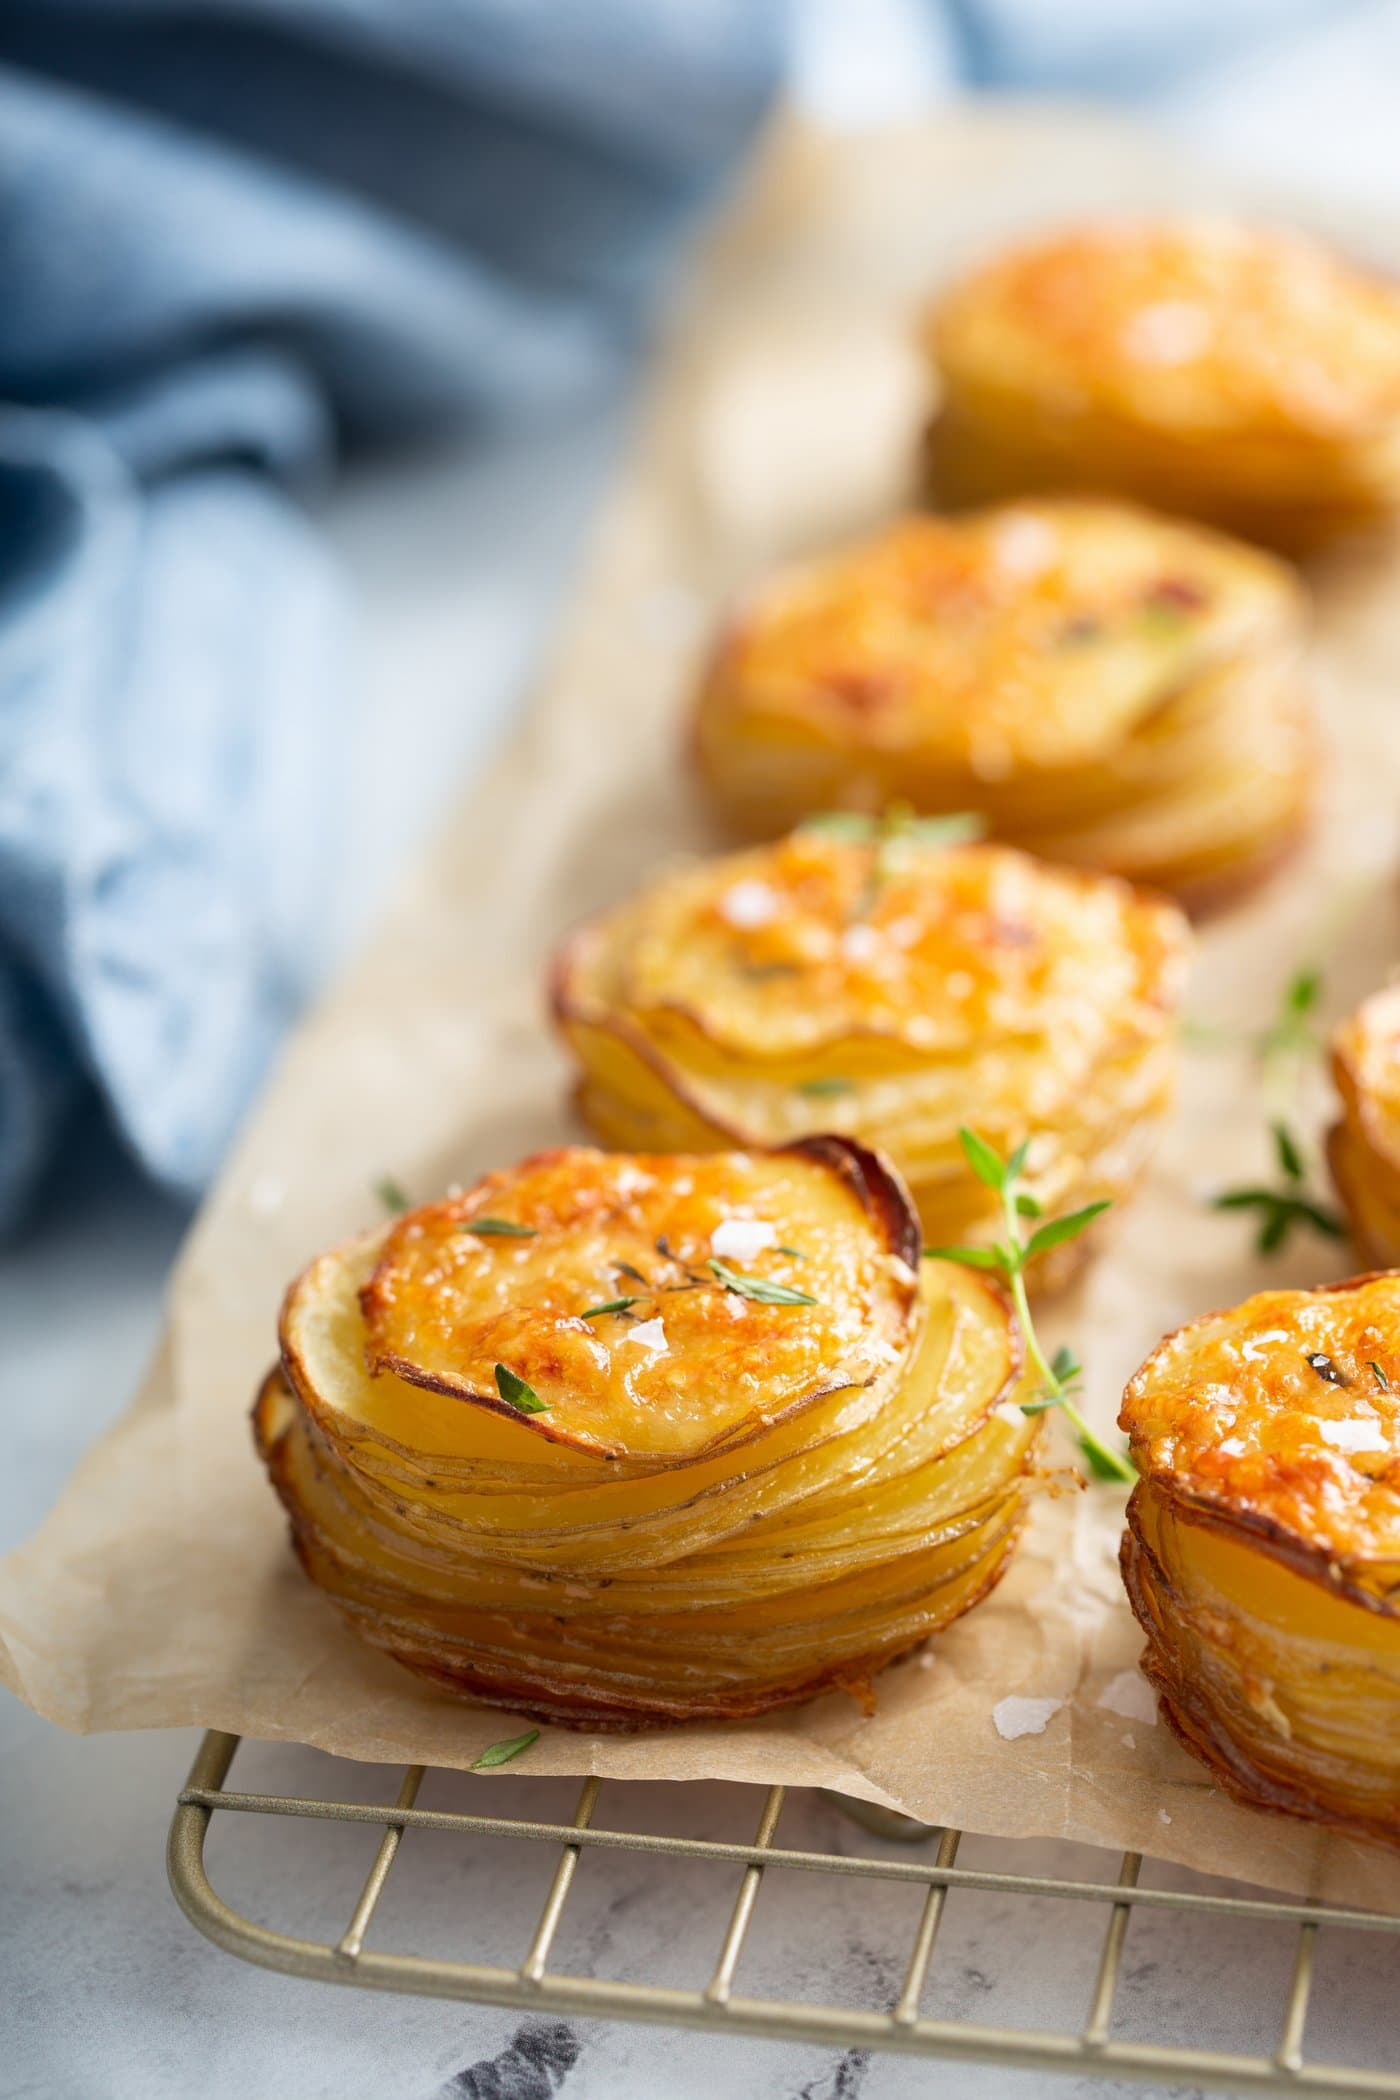 Slices of gruyere potatoes baked to a golden brown, sitting on a wooden cutting board.